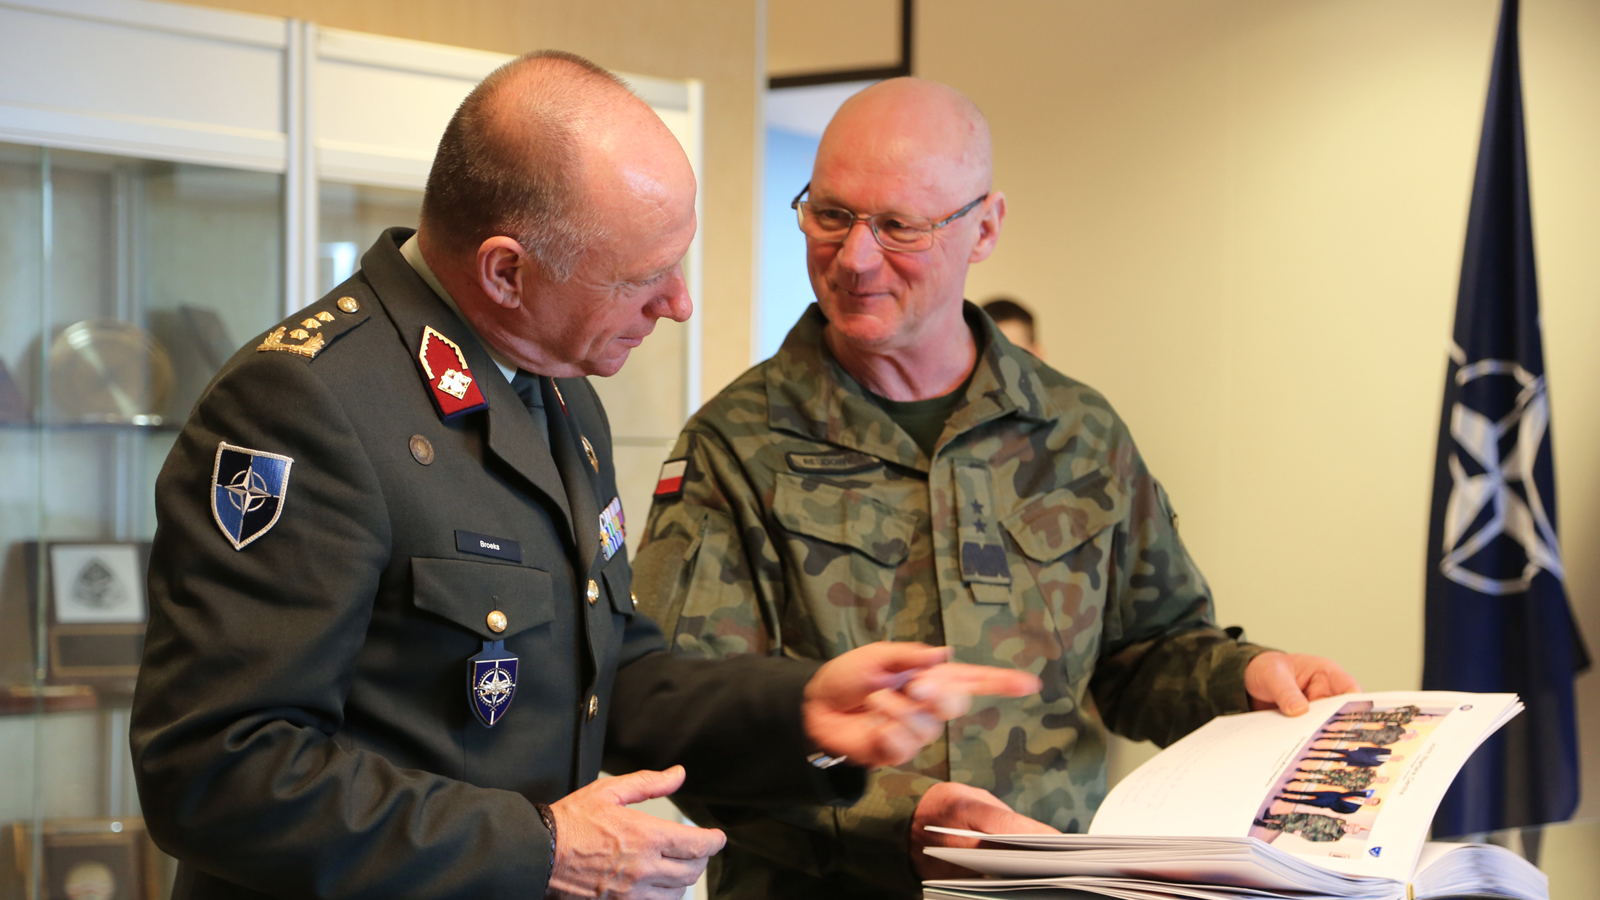 Director General of the NATO International Military Staff visits Joint Warfare Centre